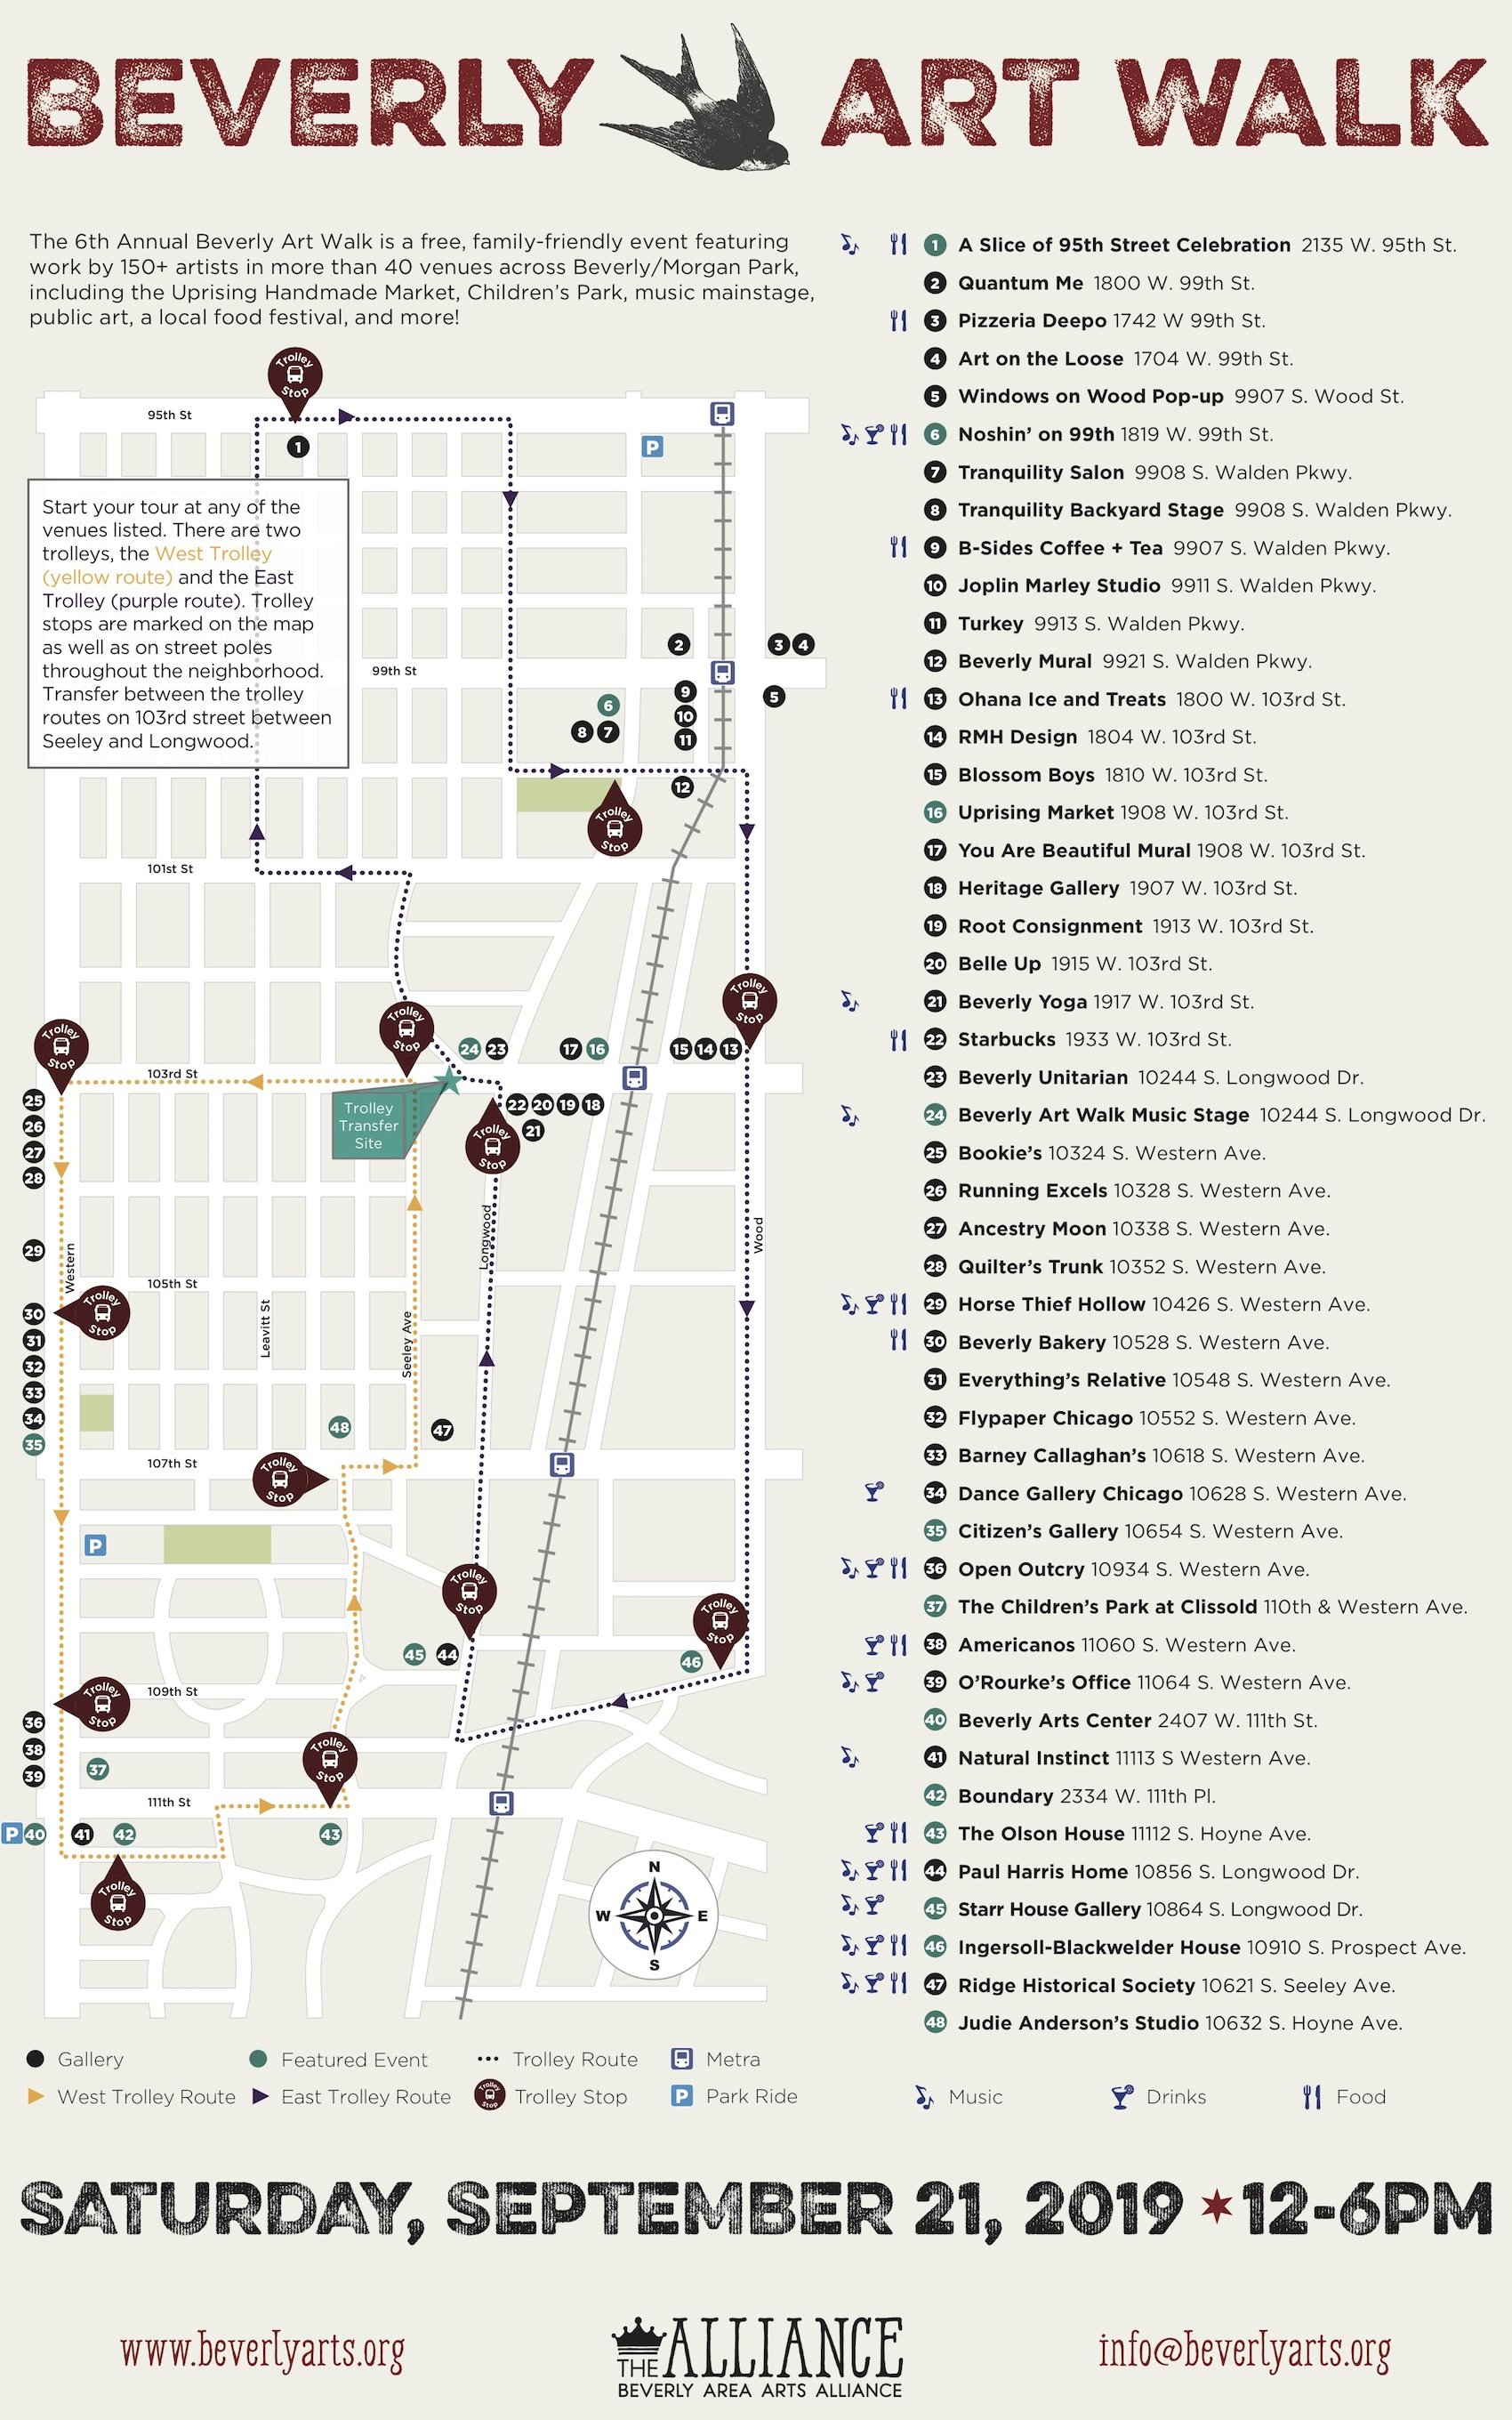 map of the 2019 Beverly Art Walk